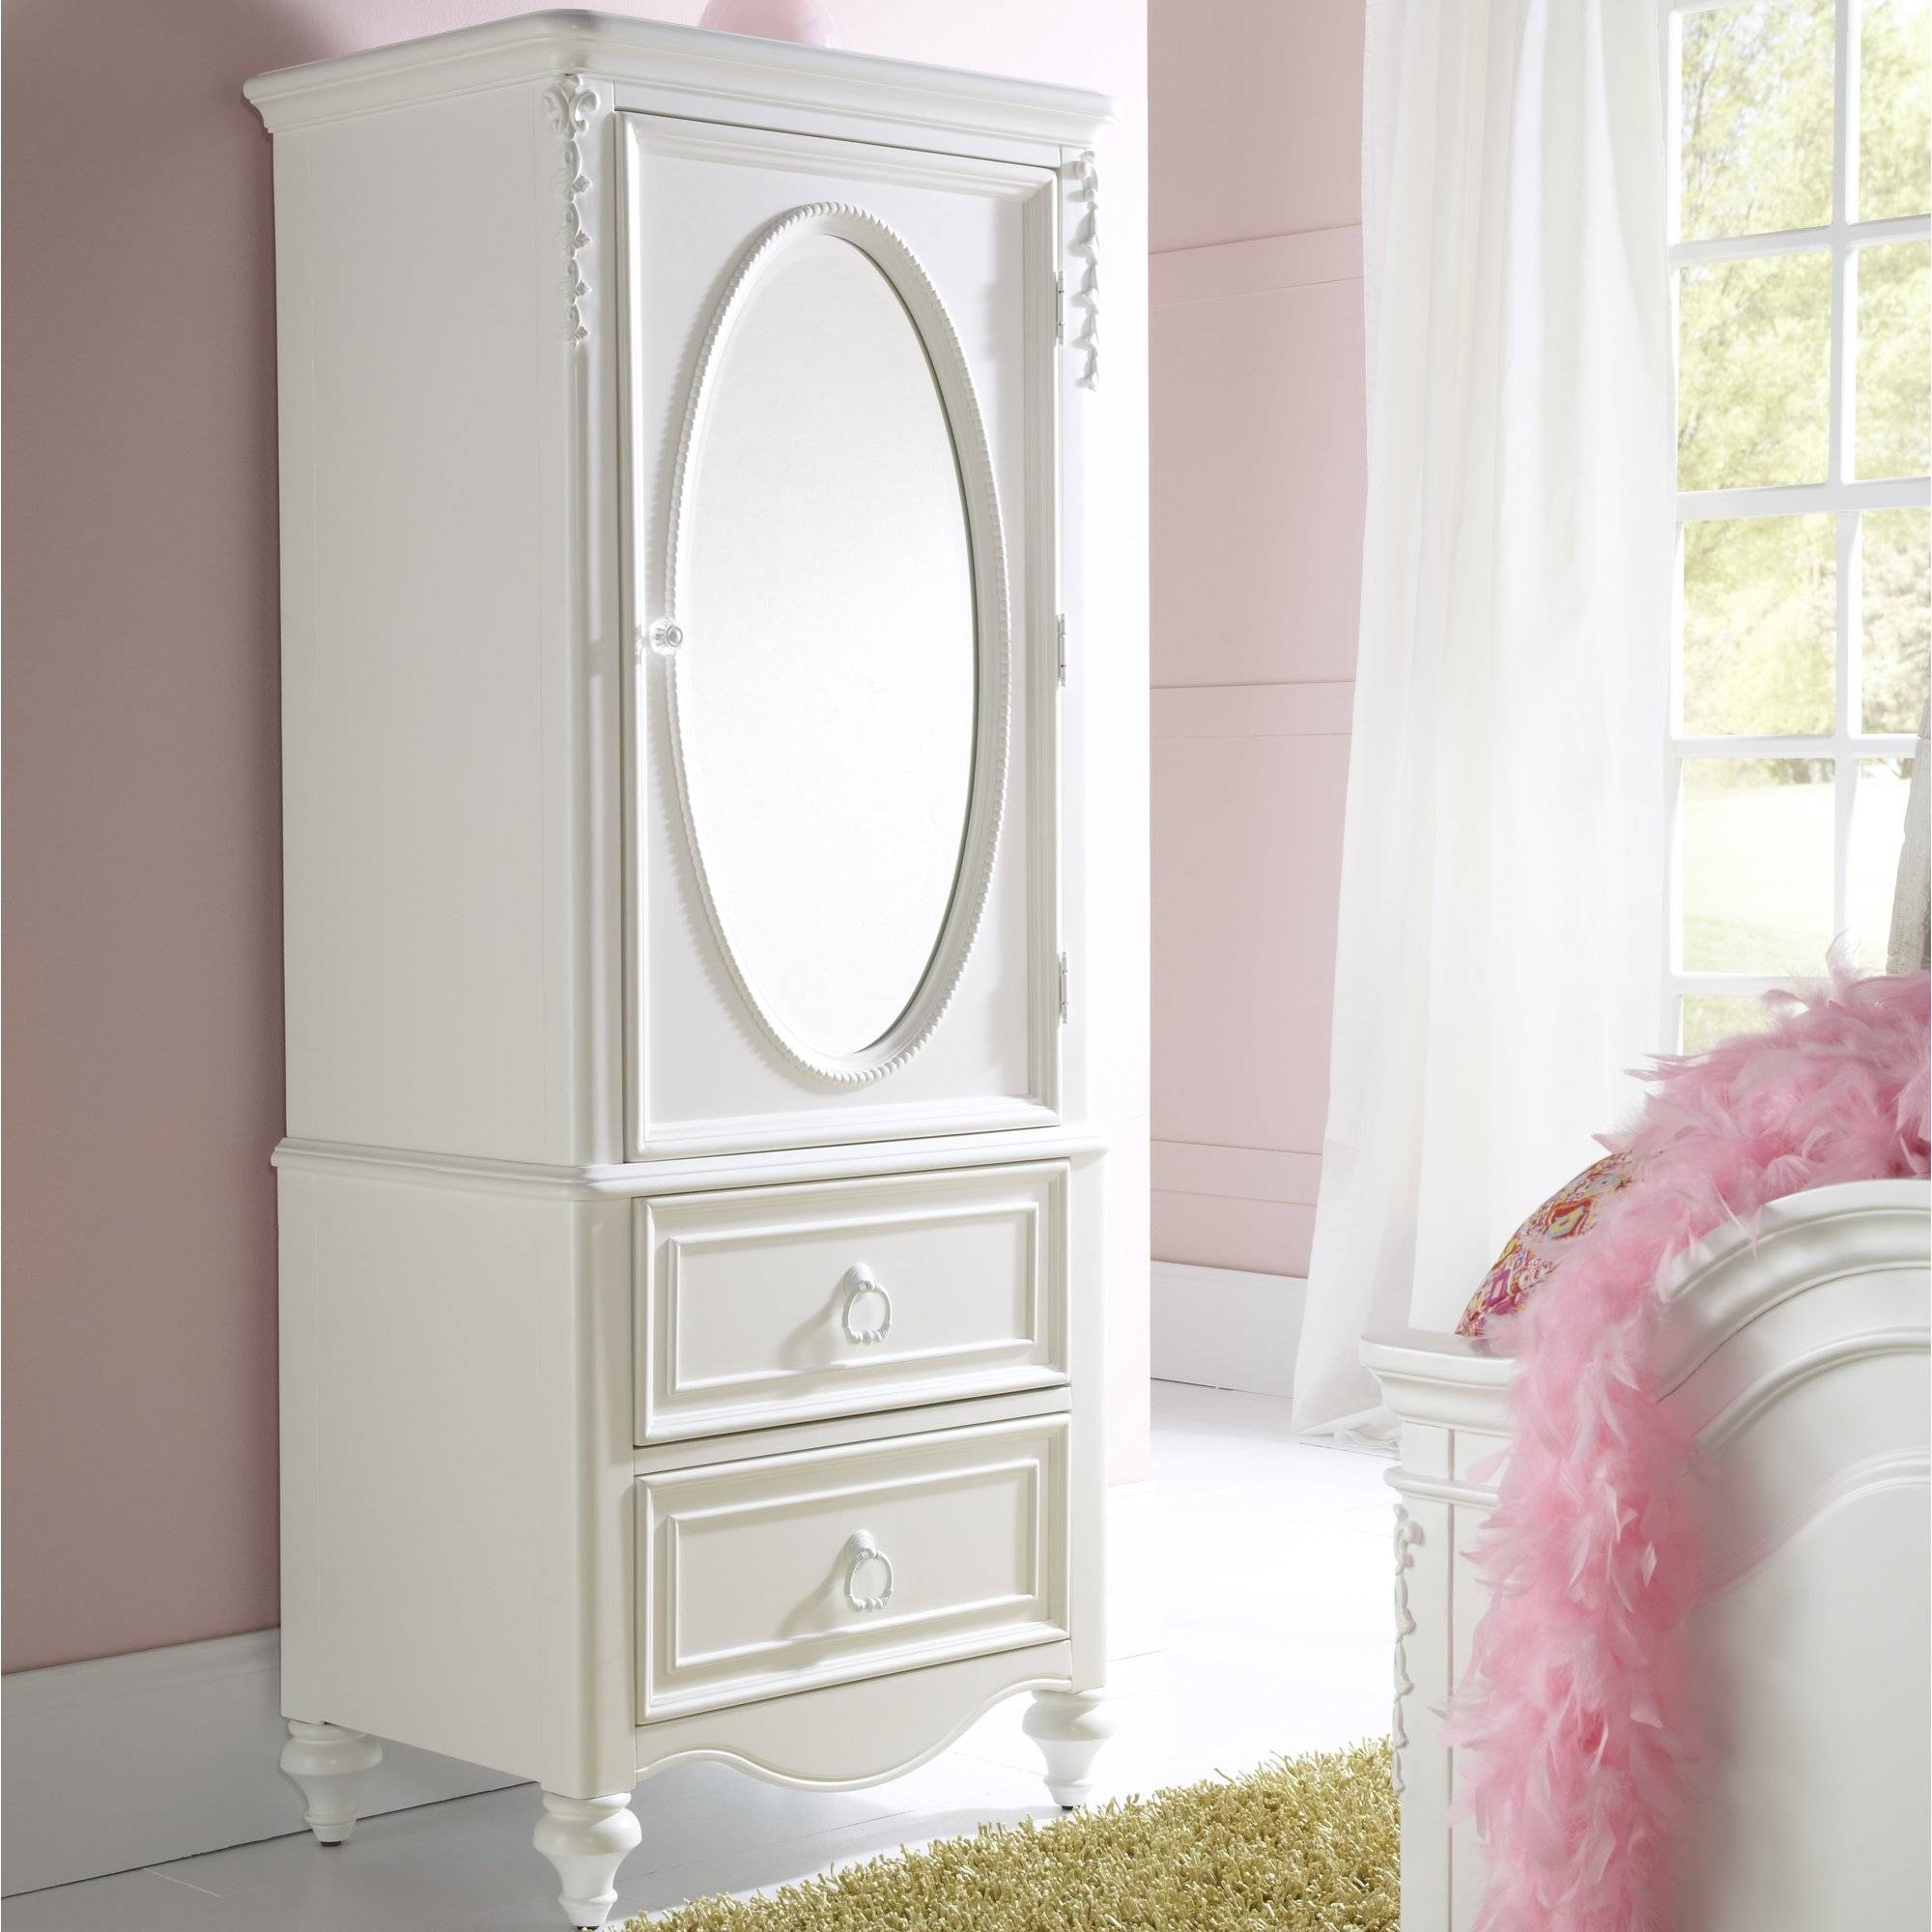 Bedroom Furniture : Cheap Wooden Wardrobes Solid Wood Wardrobes intended for Cheap Wooden Wardrobes (Image 2 of 15)